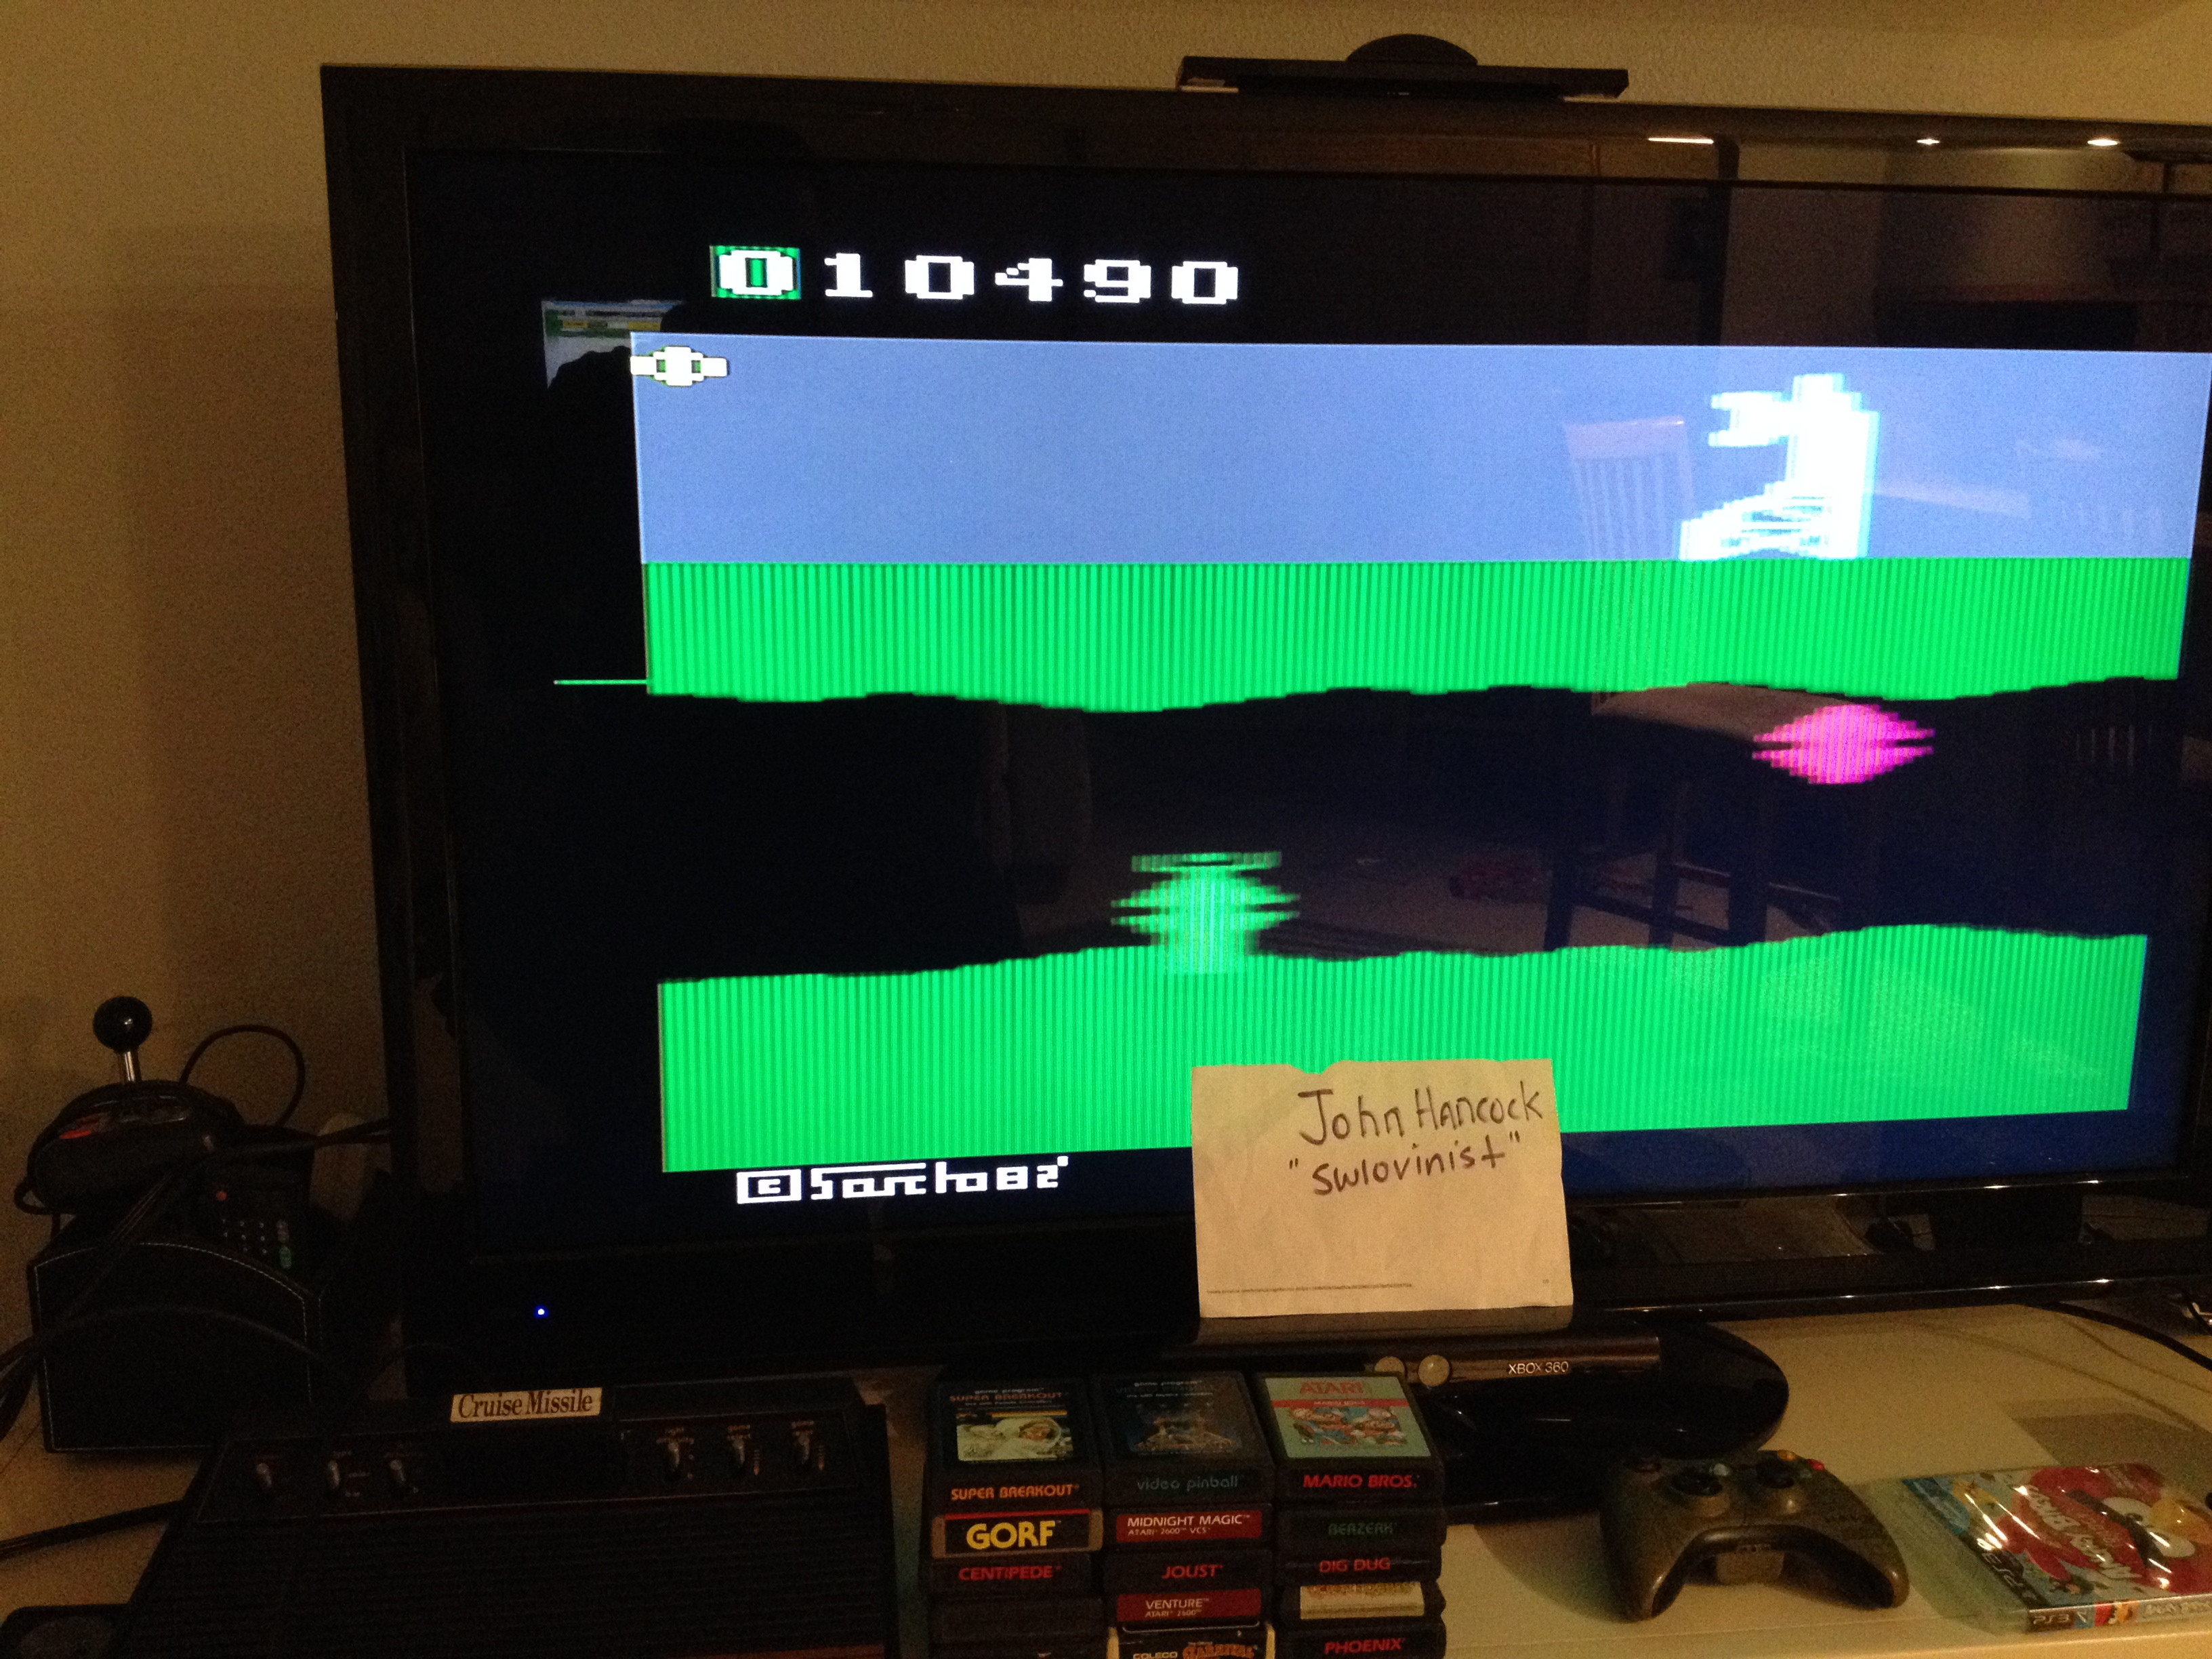 swlovinist: Cruise Missile / Exocet (Atari 2600 Expert/A) 10,490 points on 2013-10-01 00:58:09